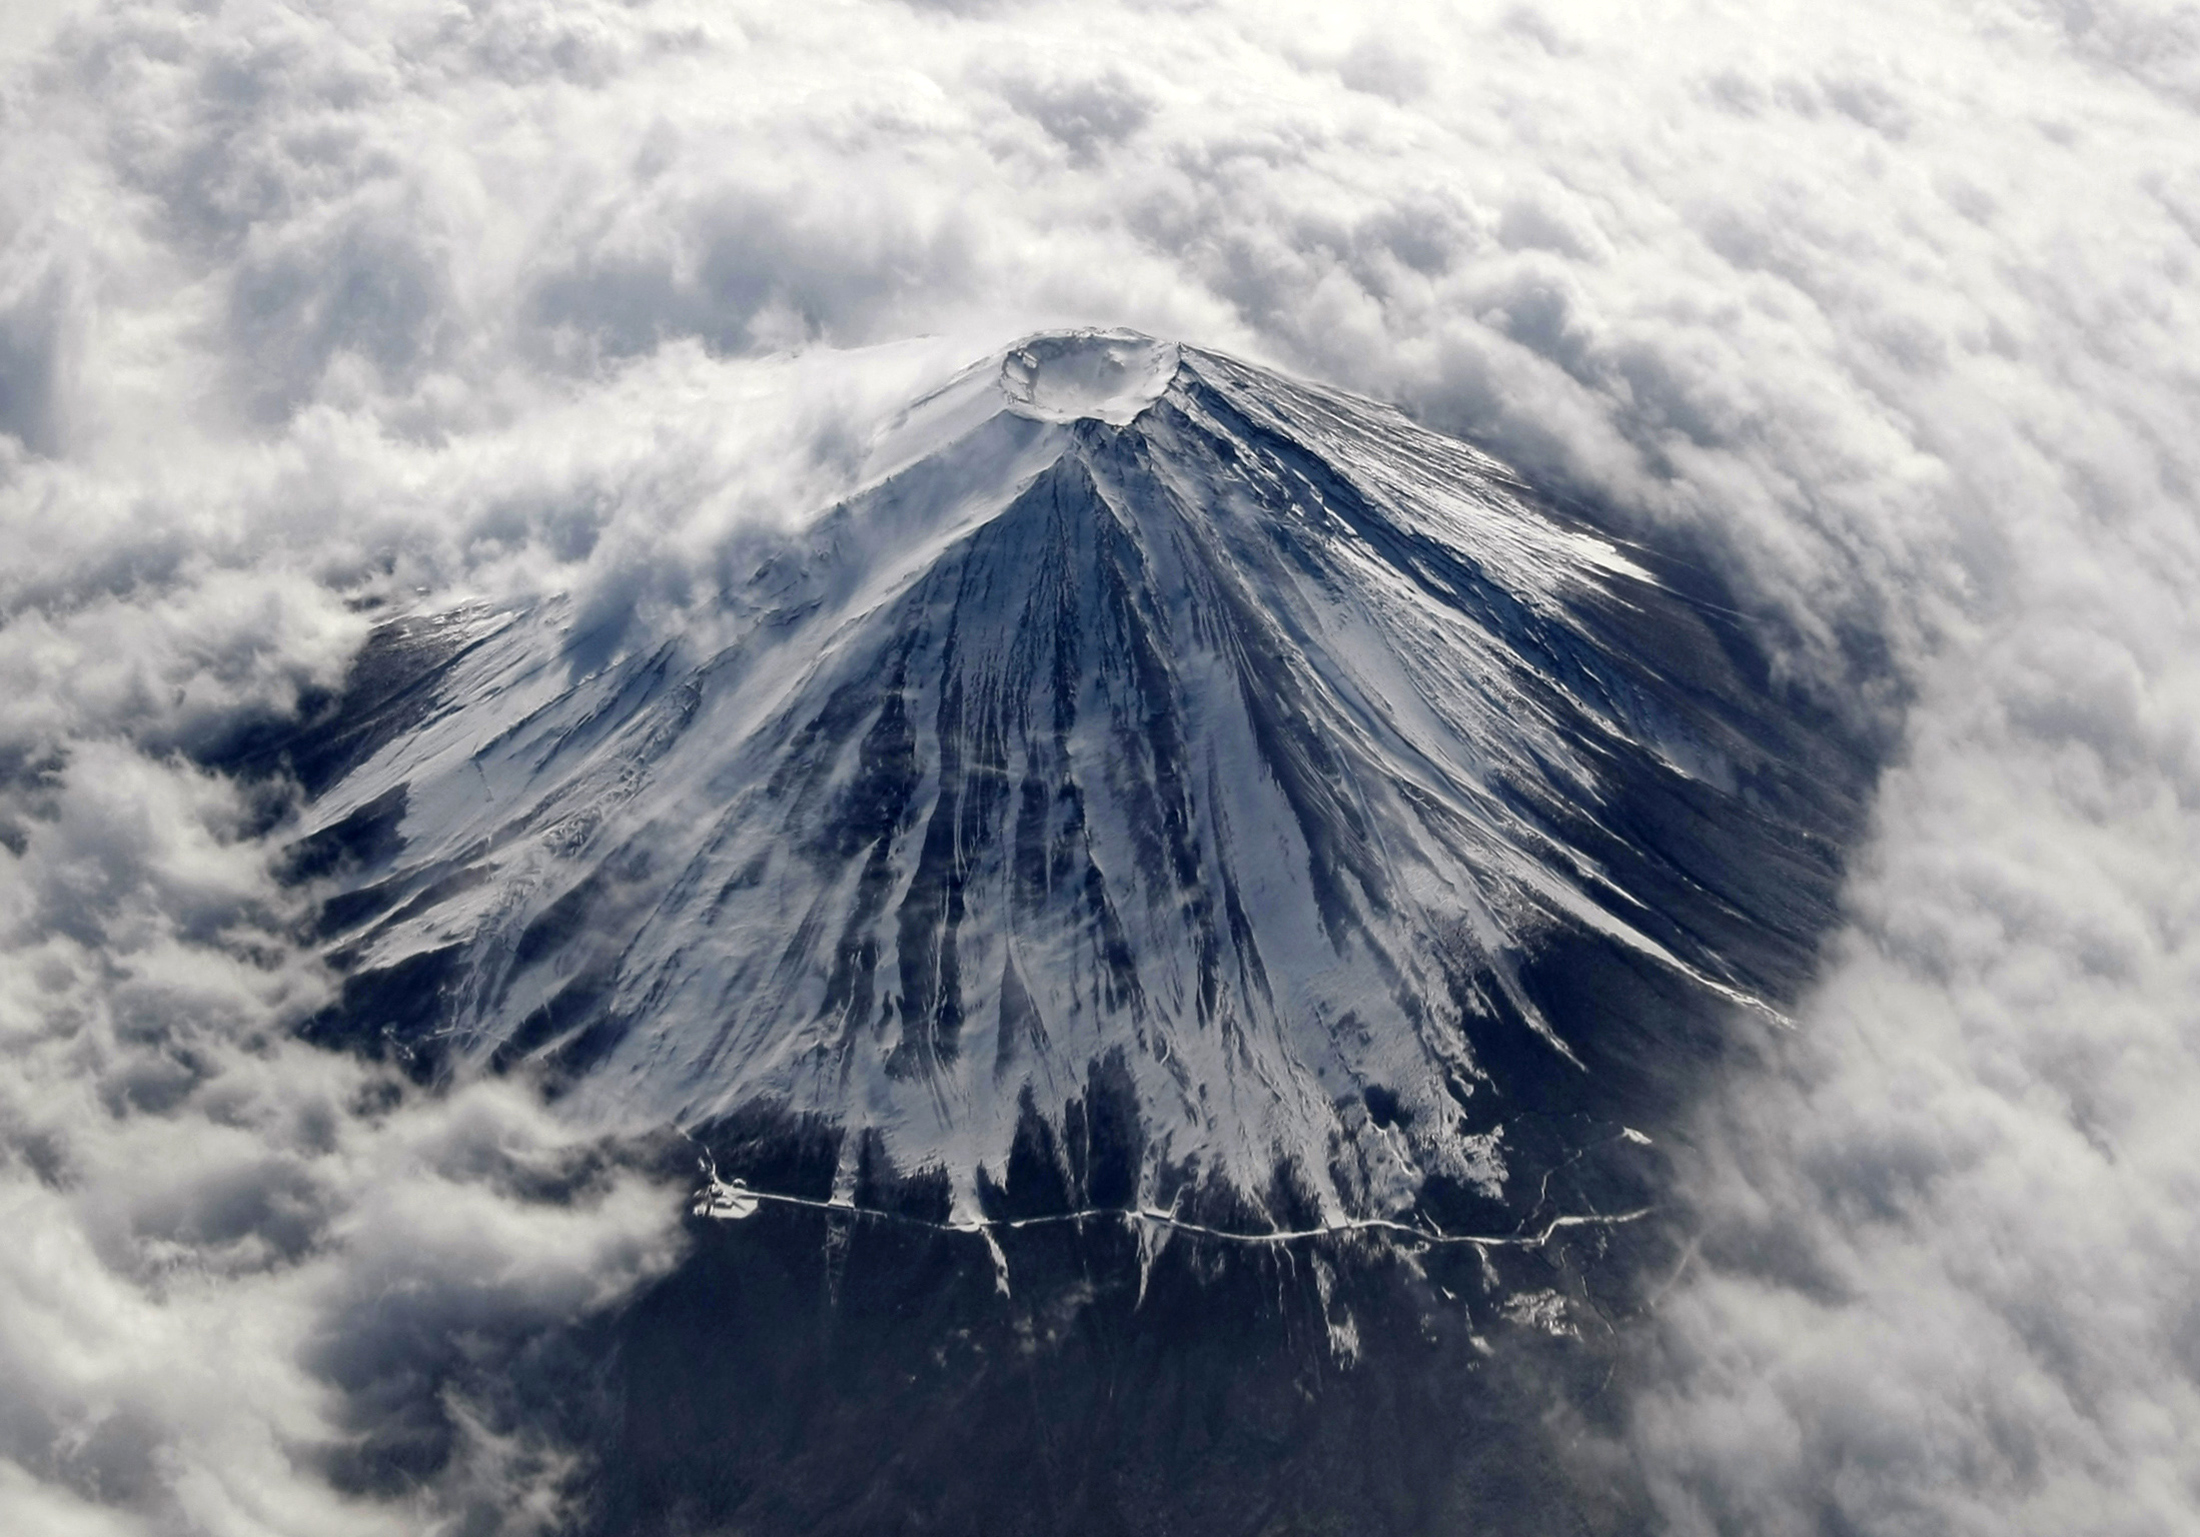 Japan's Mount Fuji, covered with snow and surrounded by cloud, is seen from an airplane February 2, 2010. Mount Fuji, at 3,776 metres (12,388 ft) is Japan's highest mountain.